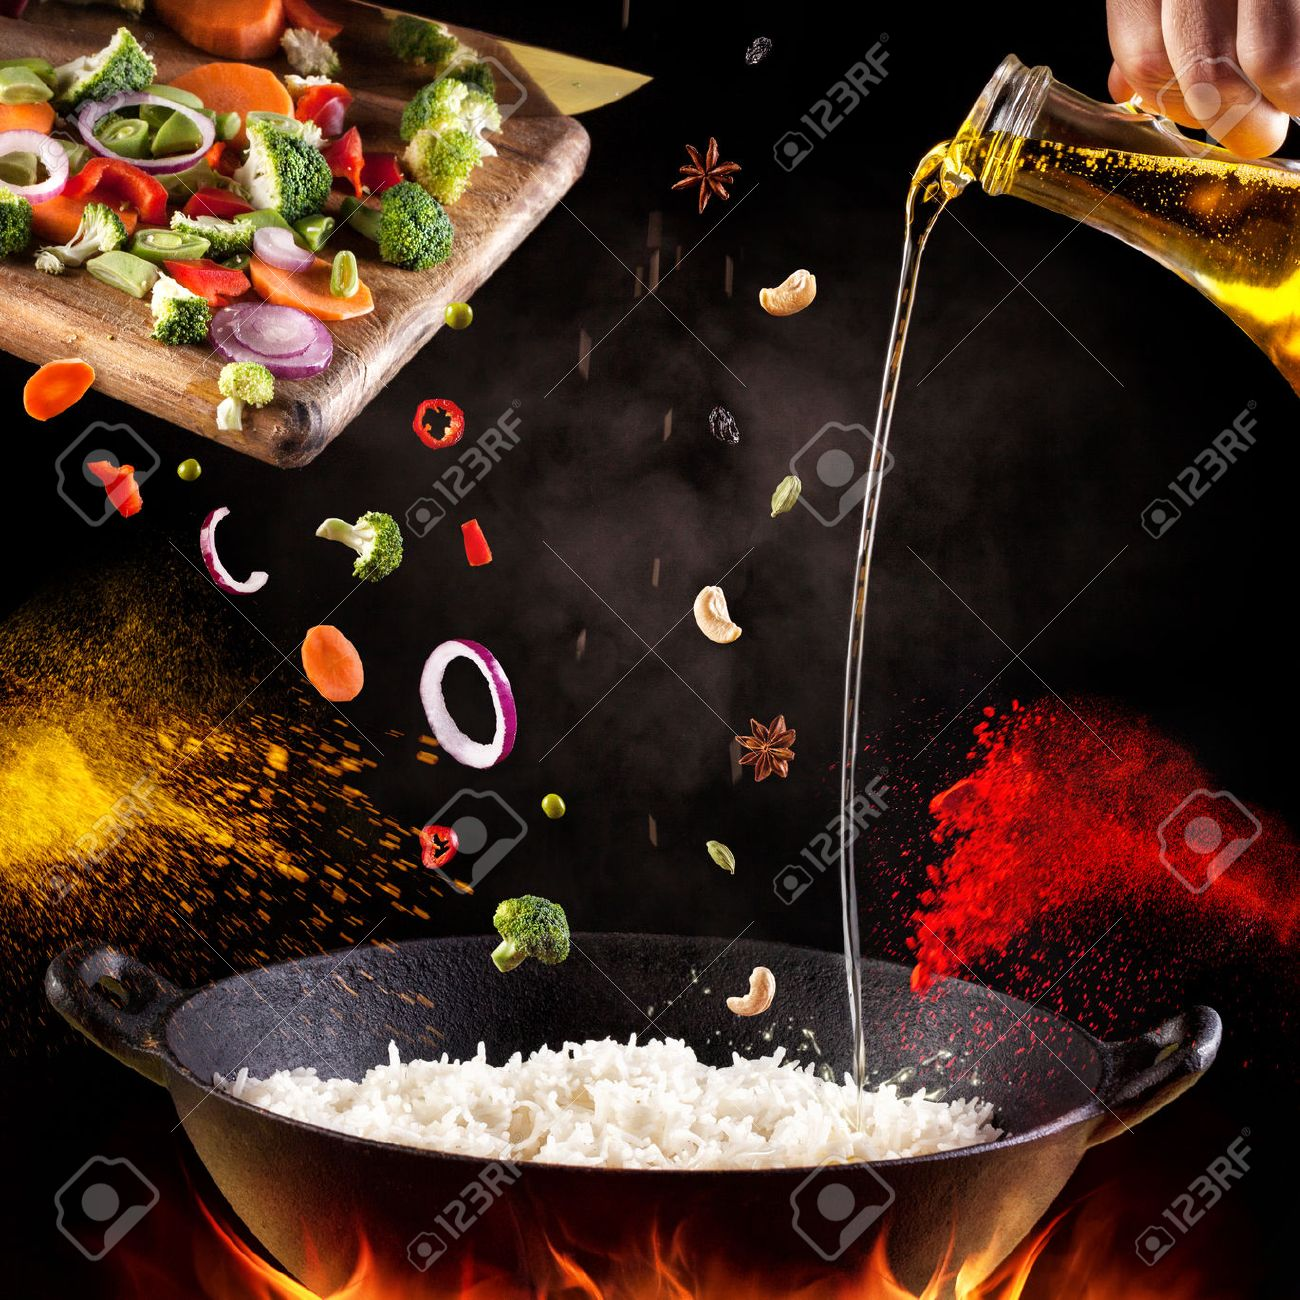 Indian vegetarian biryani with vegetables and spices in cooking process on black background Stock Photo - 45886830